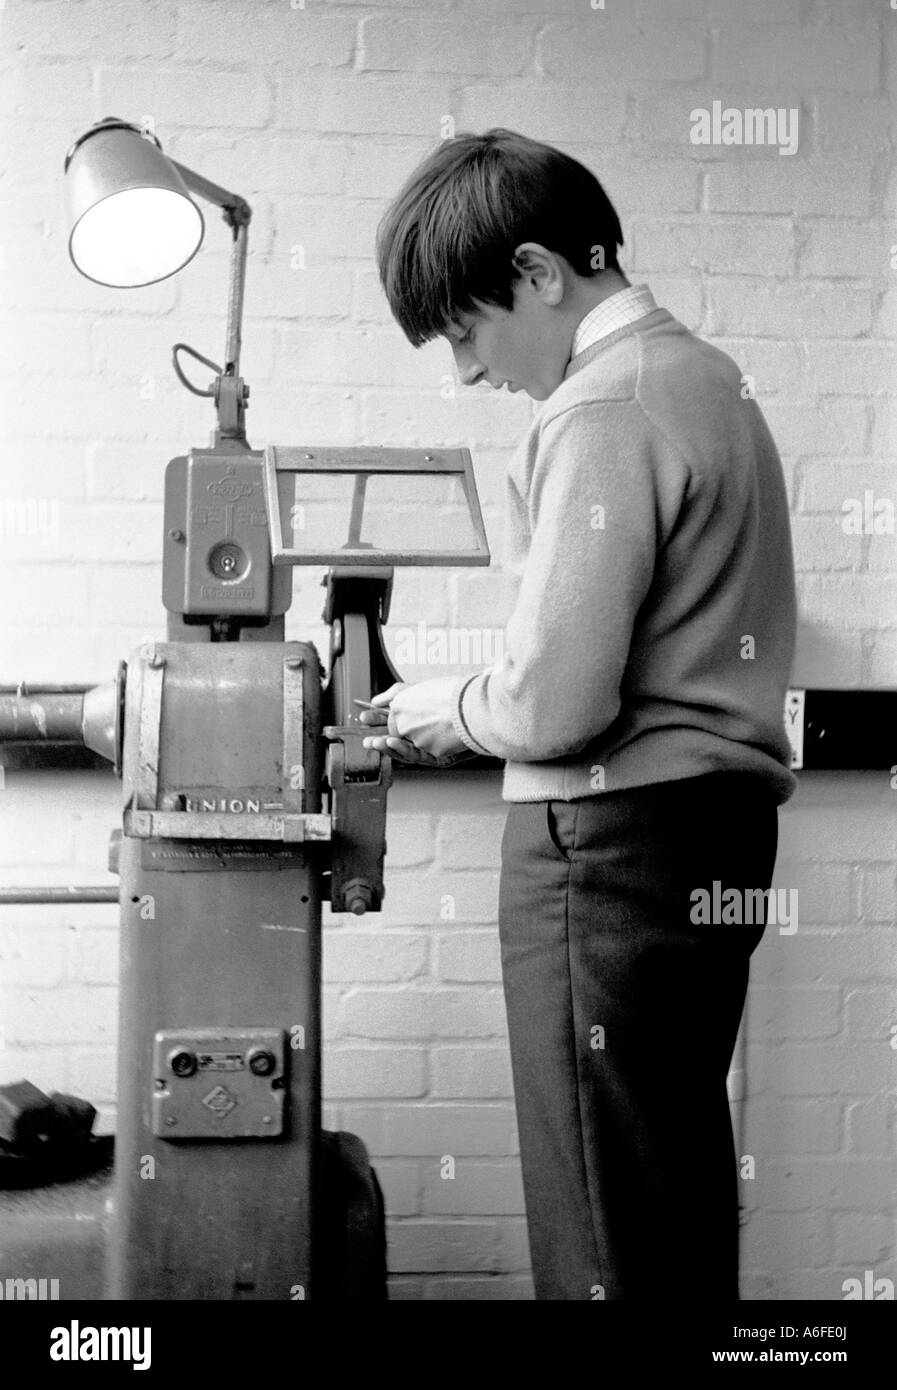 Boy pupil learning metalwork at school. London 1966. - Stock Image